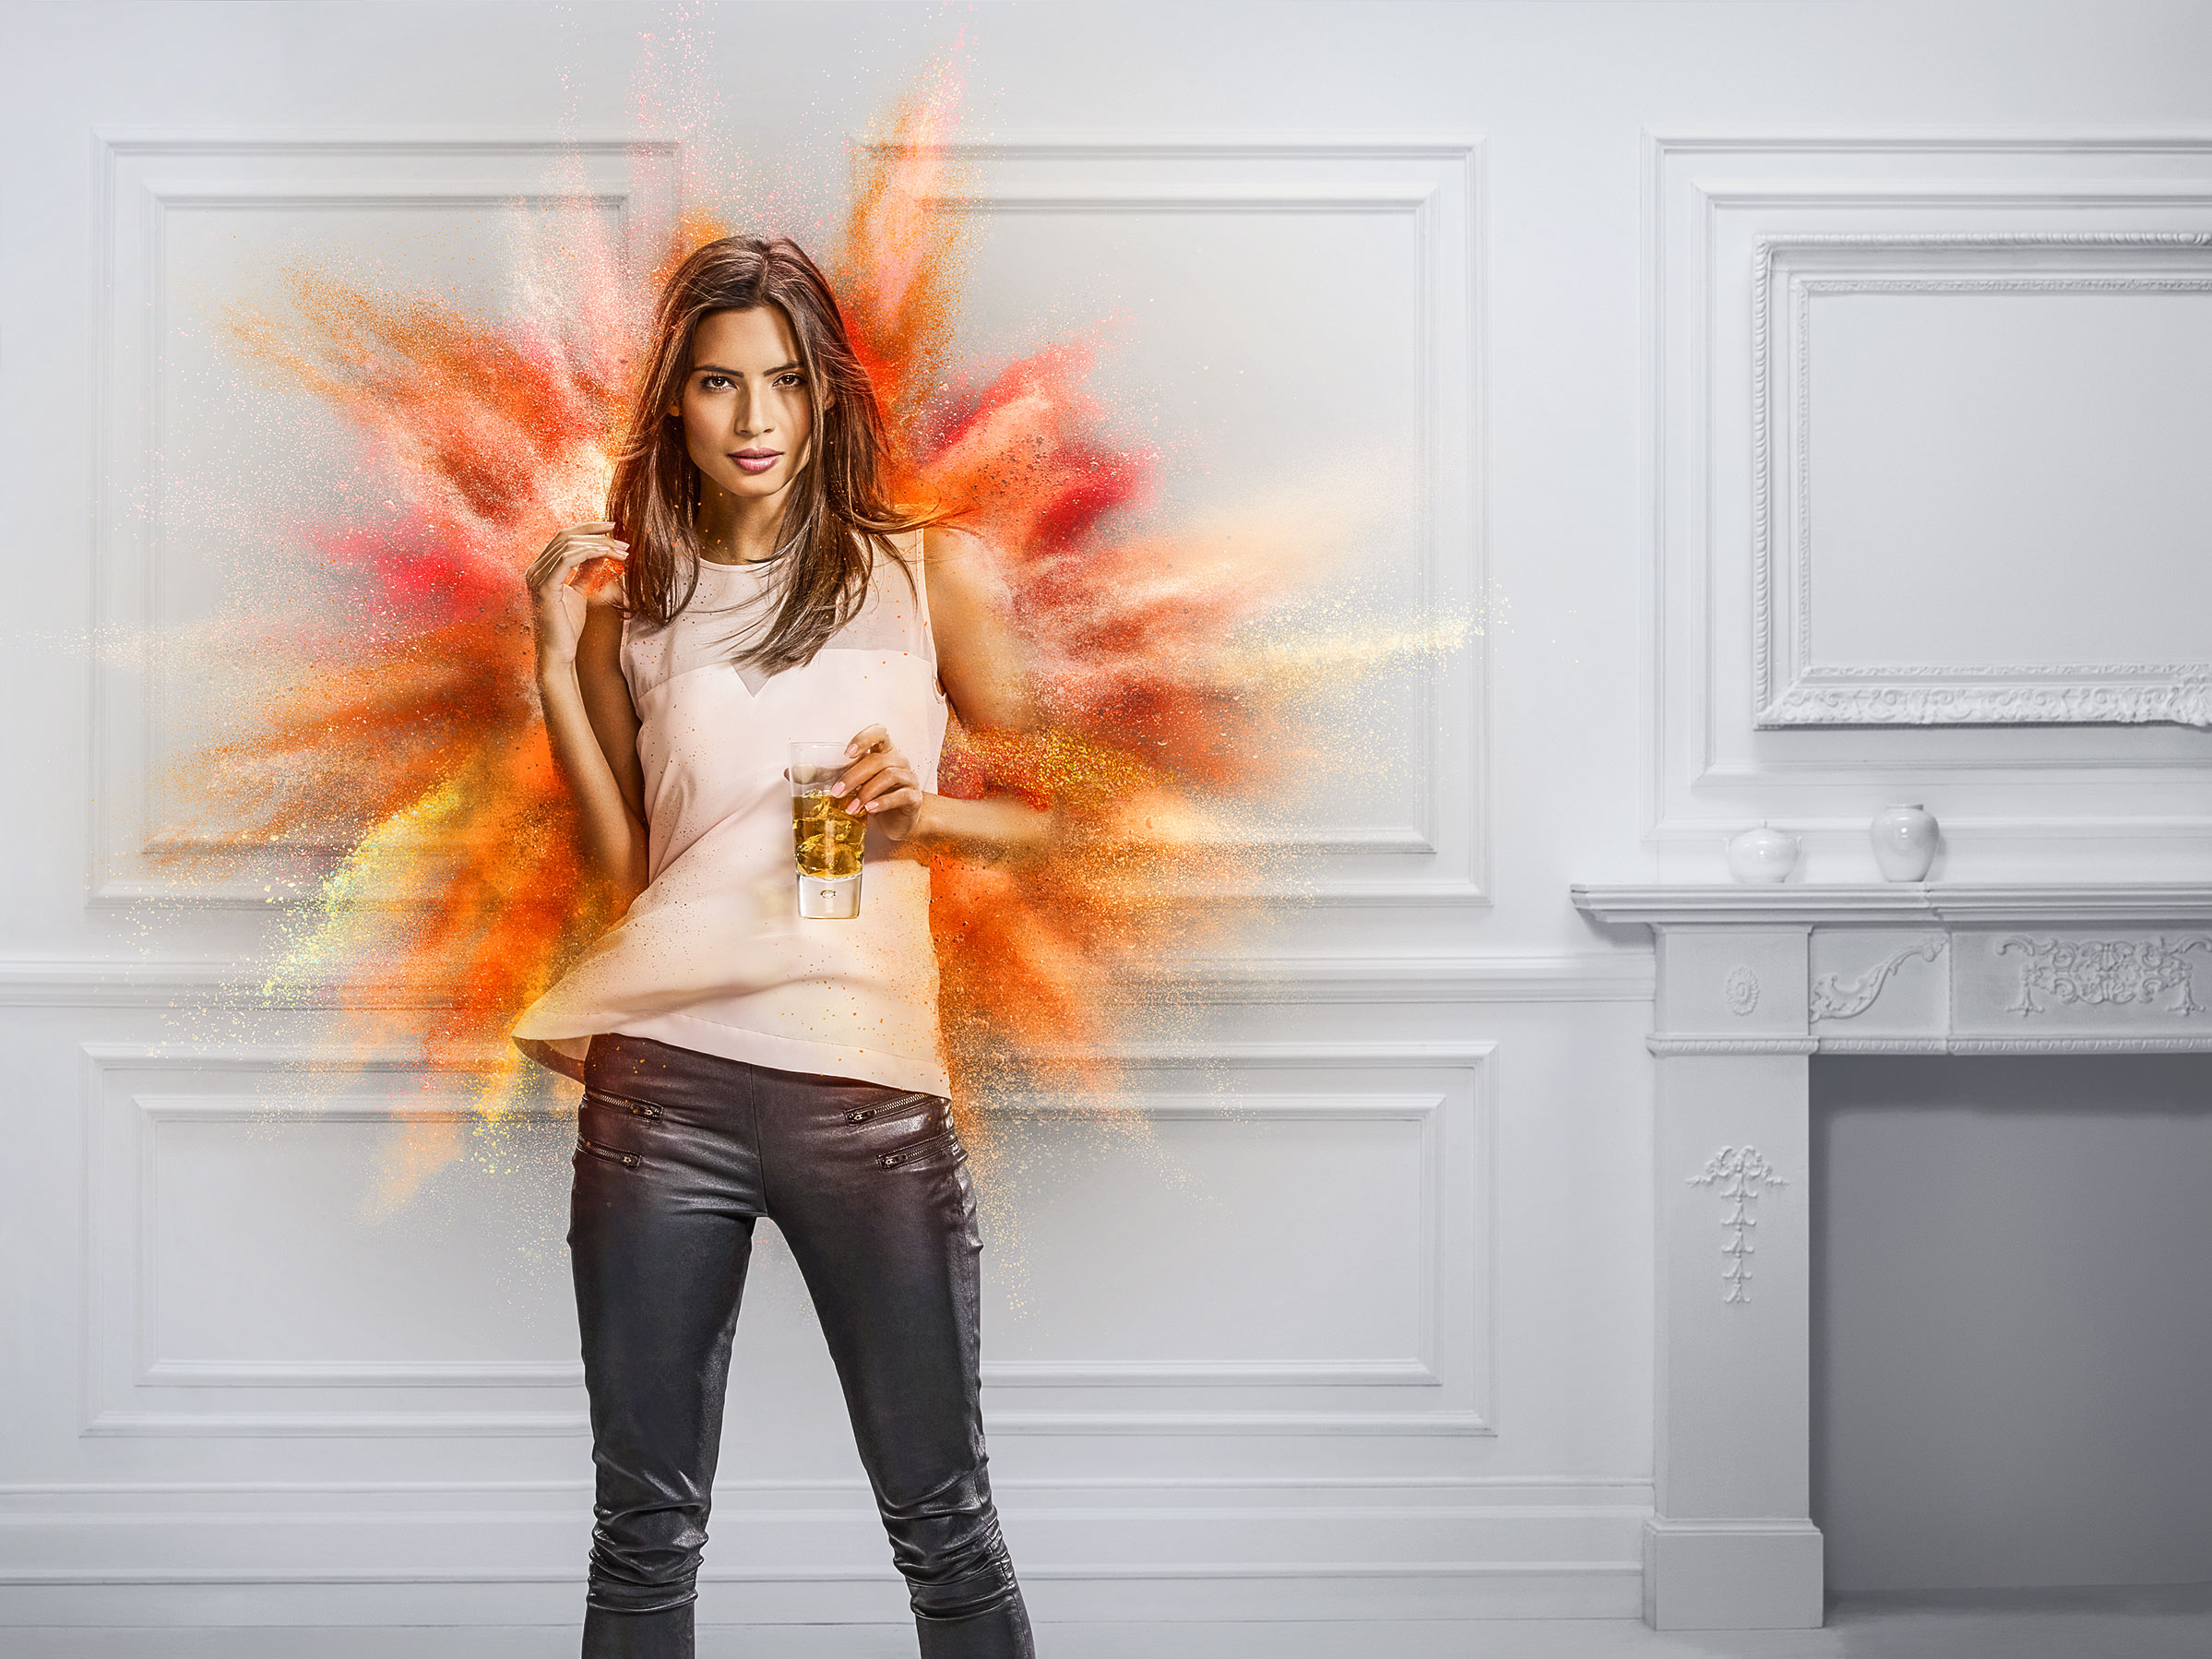 Johnnie_Walker_powder_explosion_tank_retouching_LOVE_agency_manchester_london_01